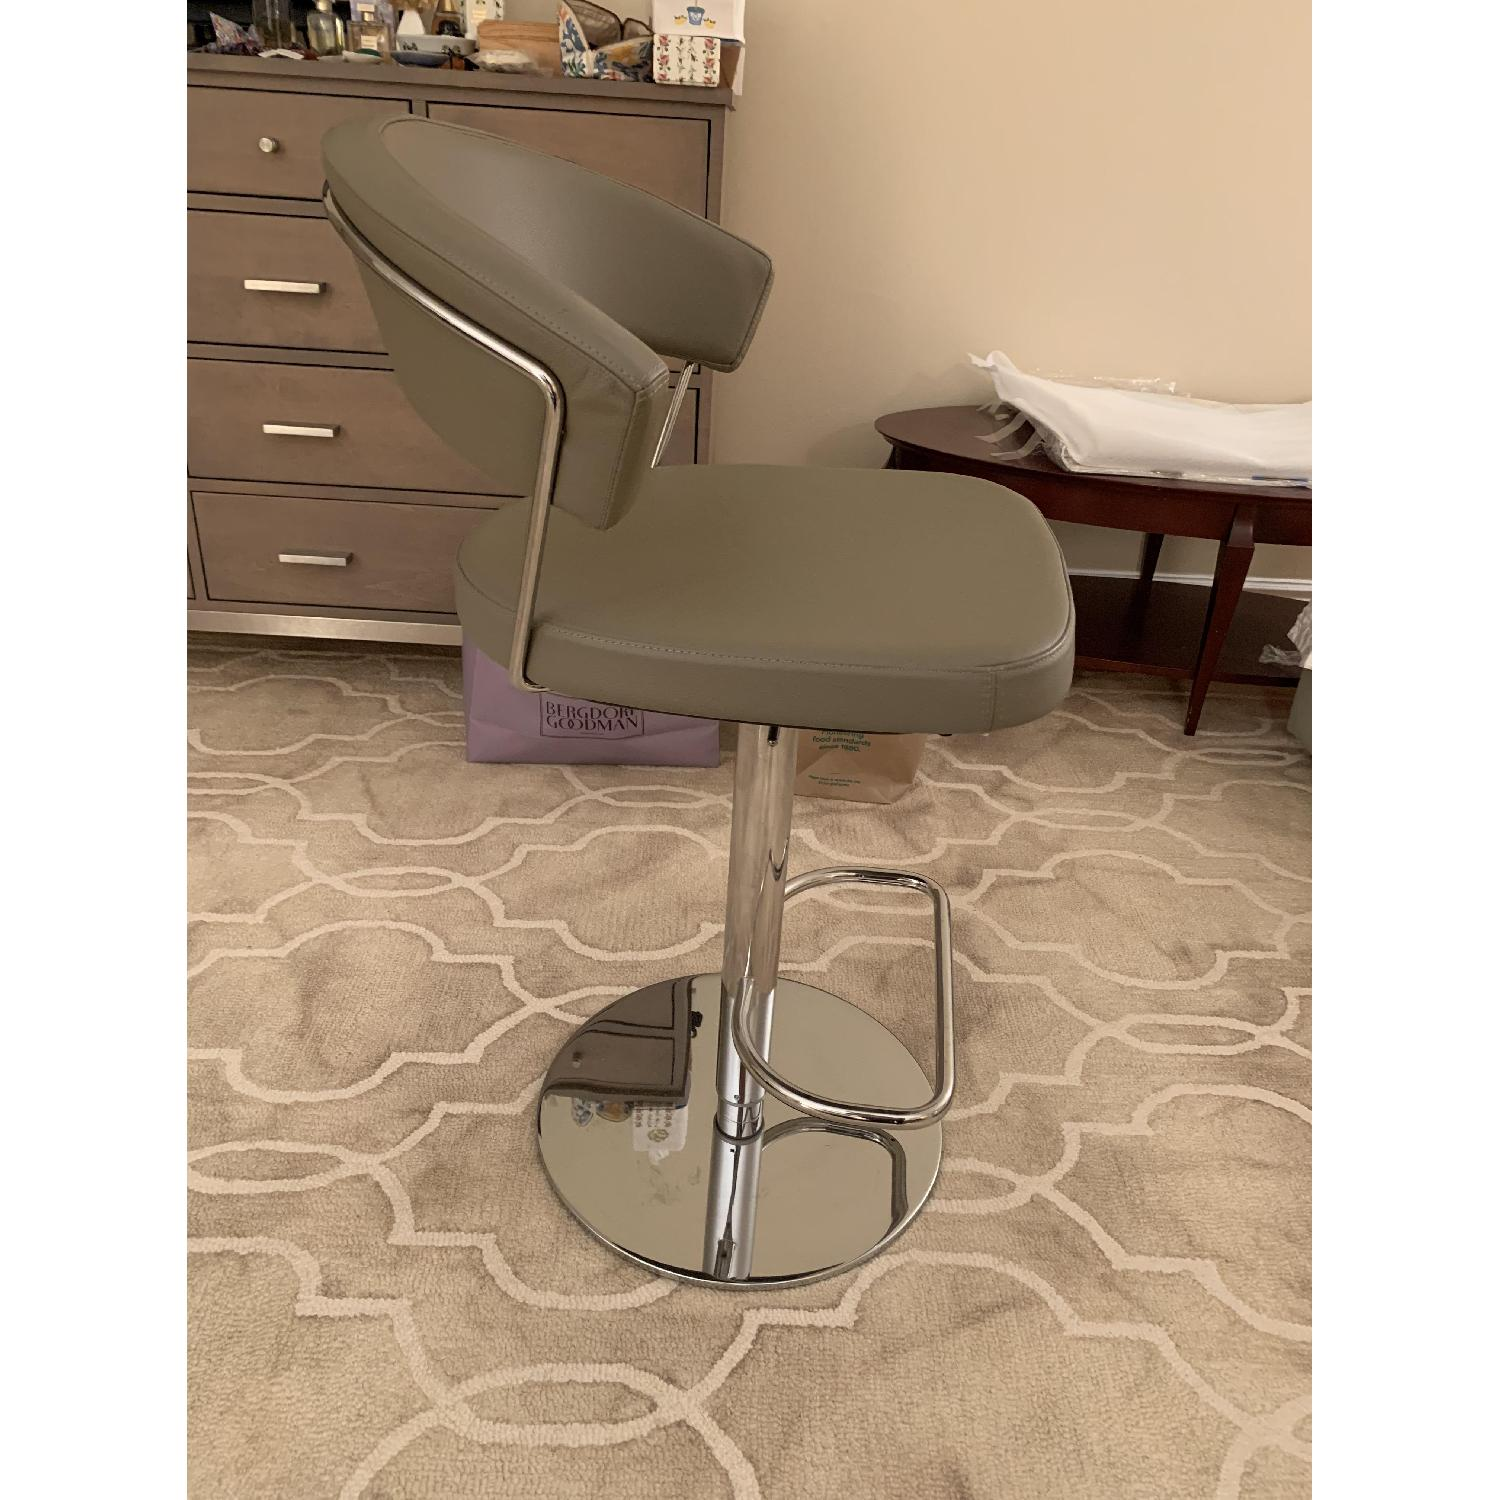 Calligaris Grey Leather Adjustable Stools w/ Backrest - image-3